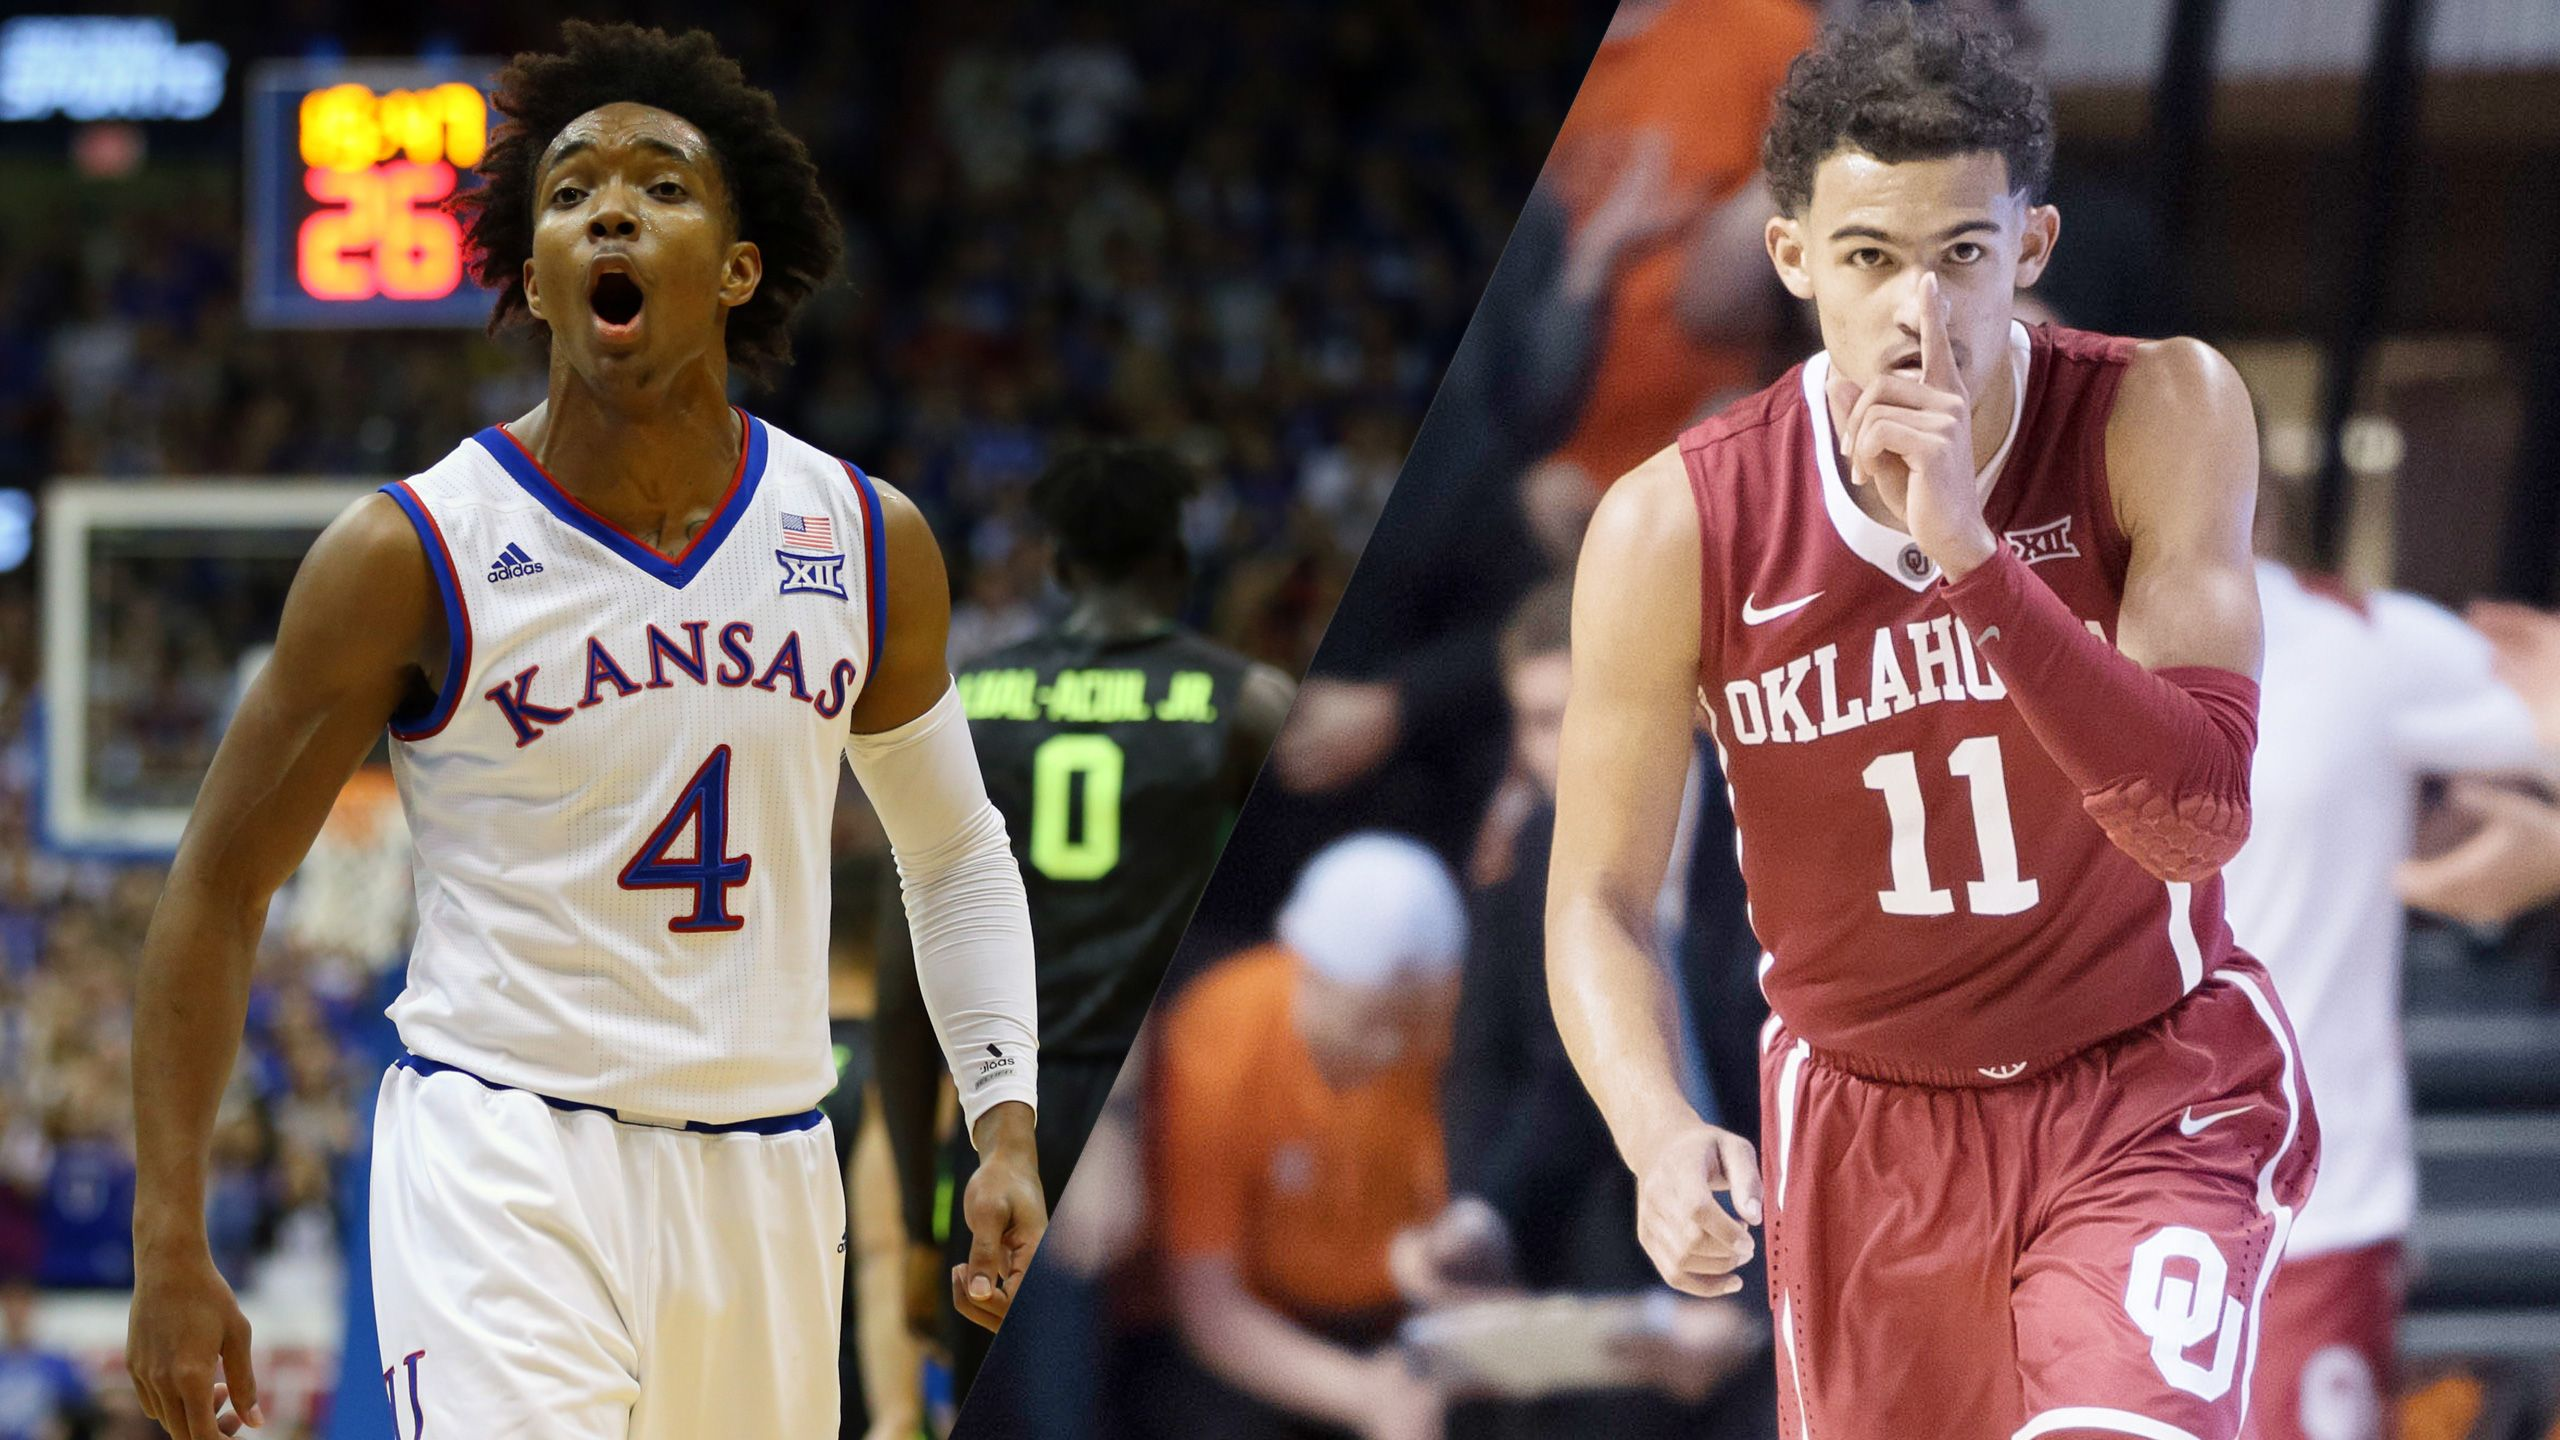 #5 Kansas vs. #12 Oklahoma (M Basketball)